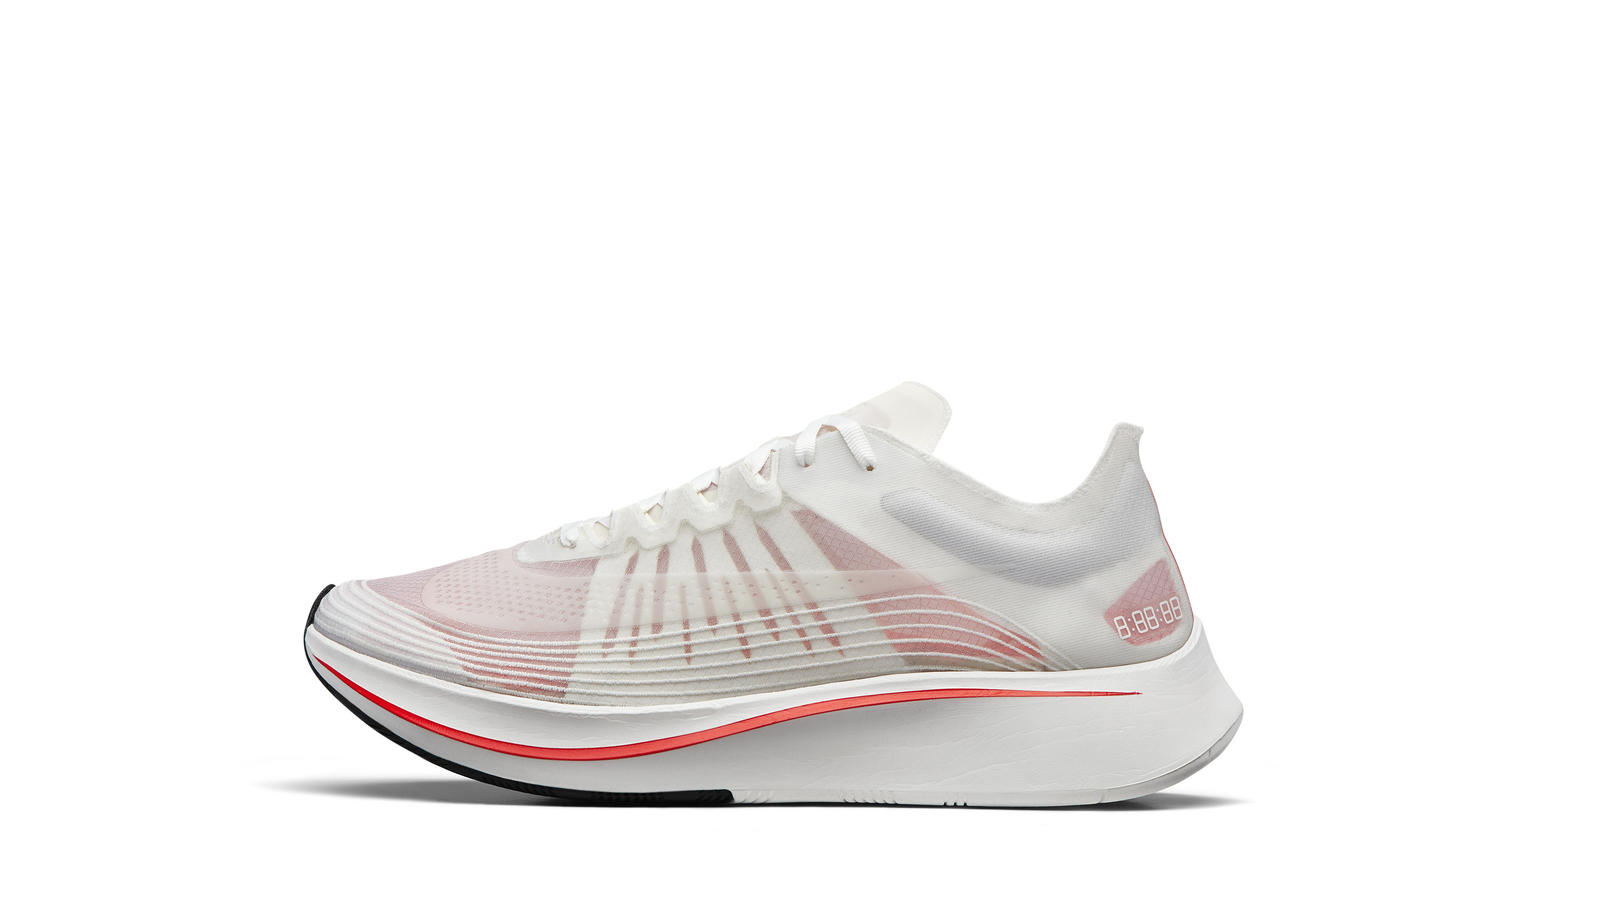 aaf797aed7bc Color White Black- Kicks Off Court Nike Runners .